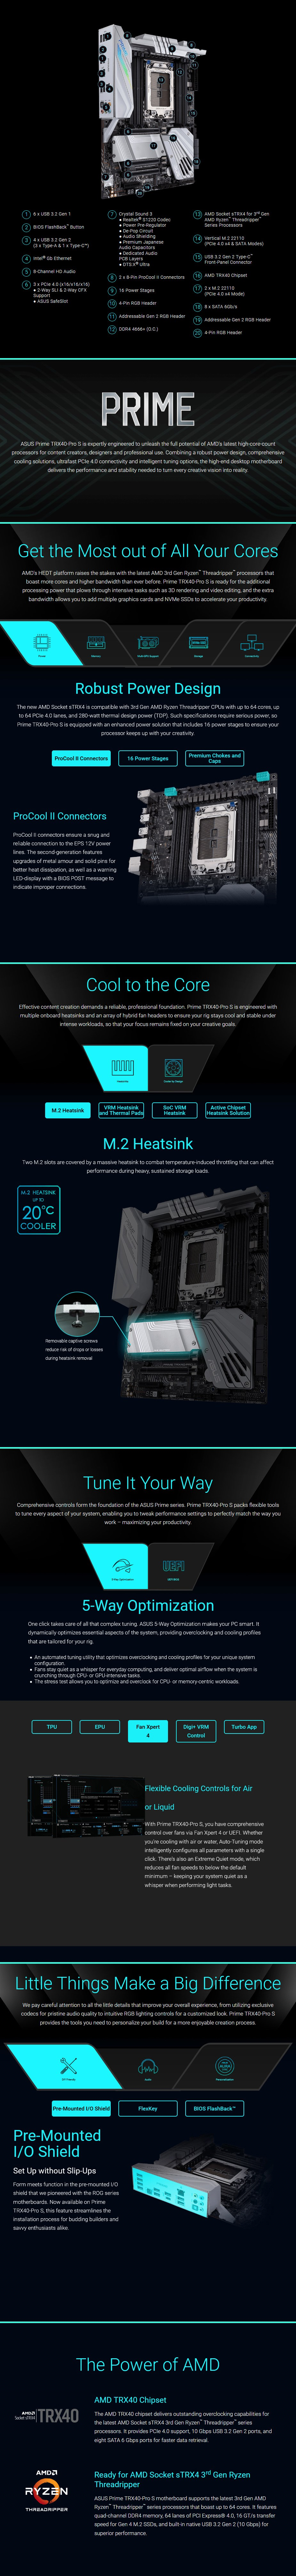 ASUS PRIME TRX40-PRO S sTRX4 ATX Motherboard - Overview 1